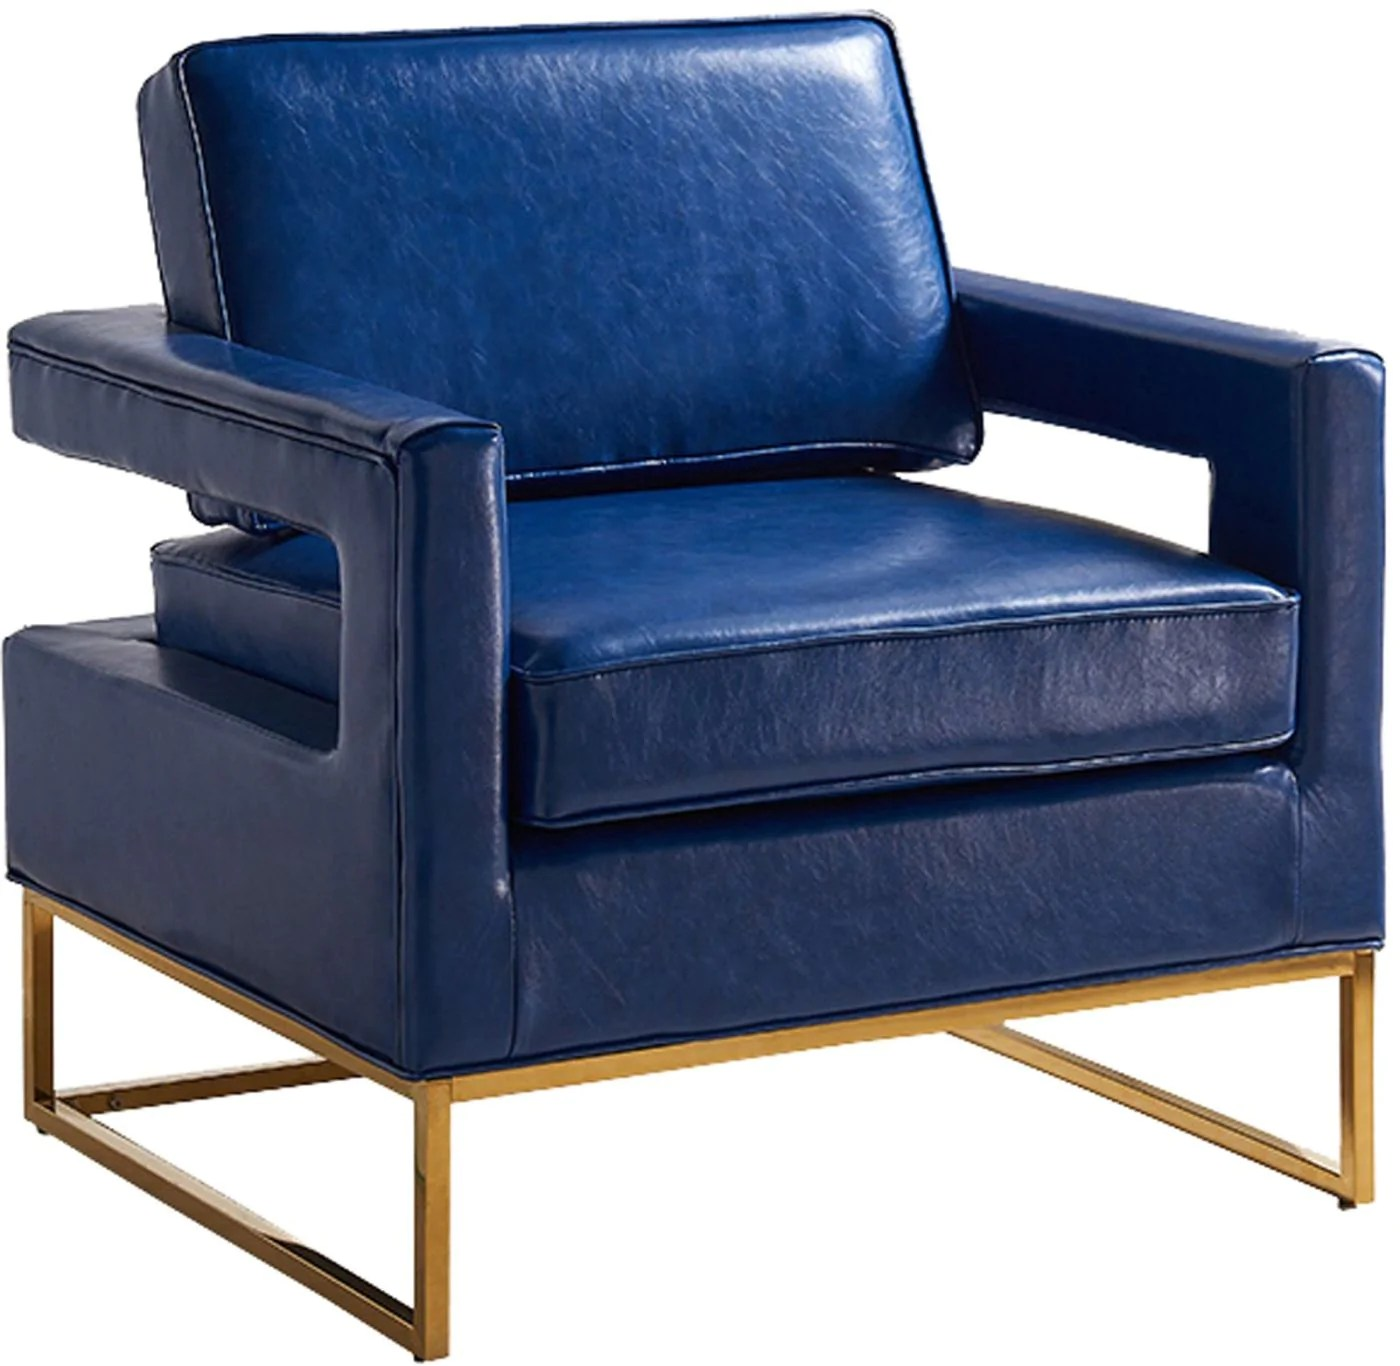 Navy Accent Chair Meridian Amelia Navy Leather Accent Chair At Contemporary